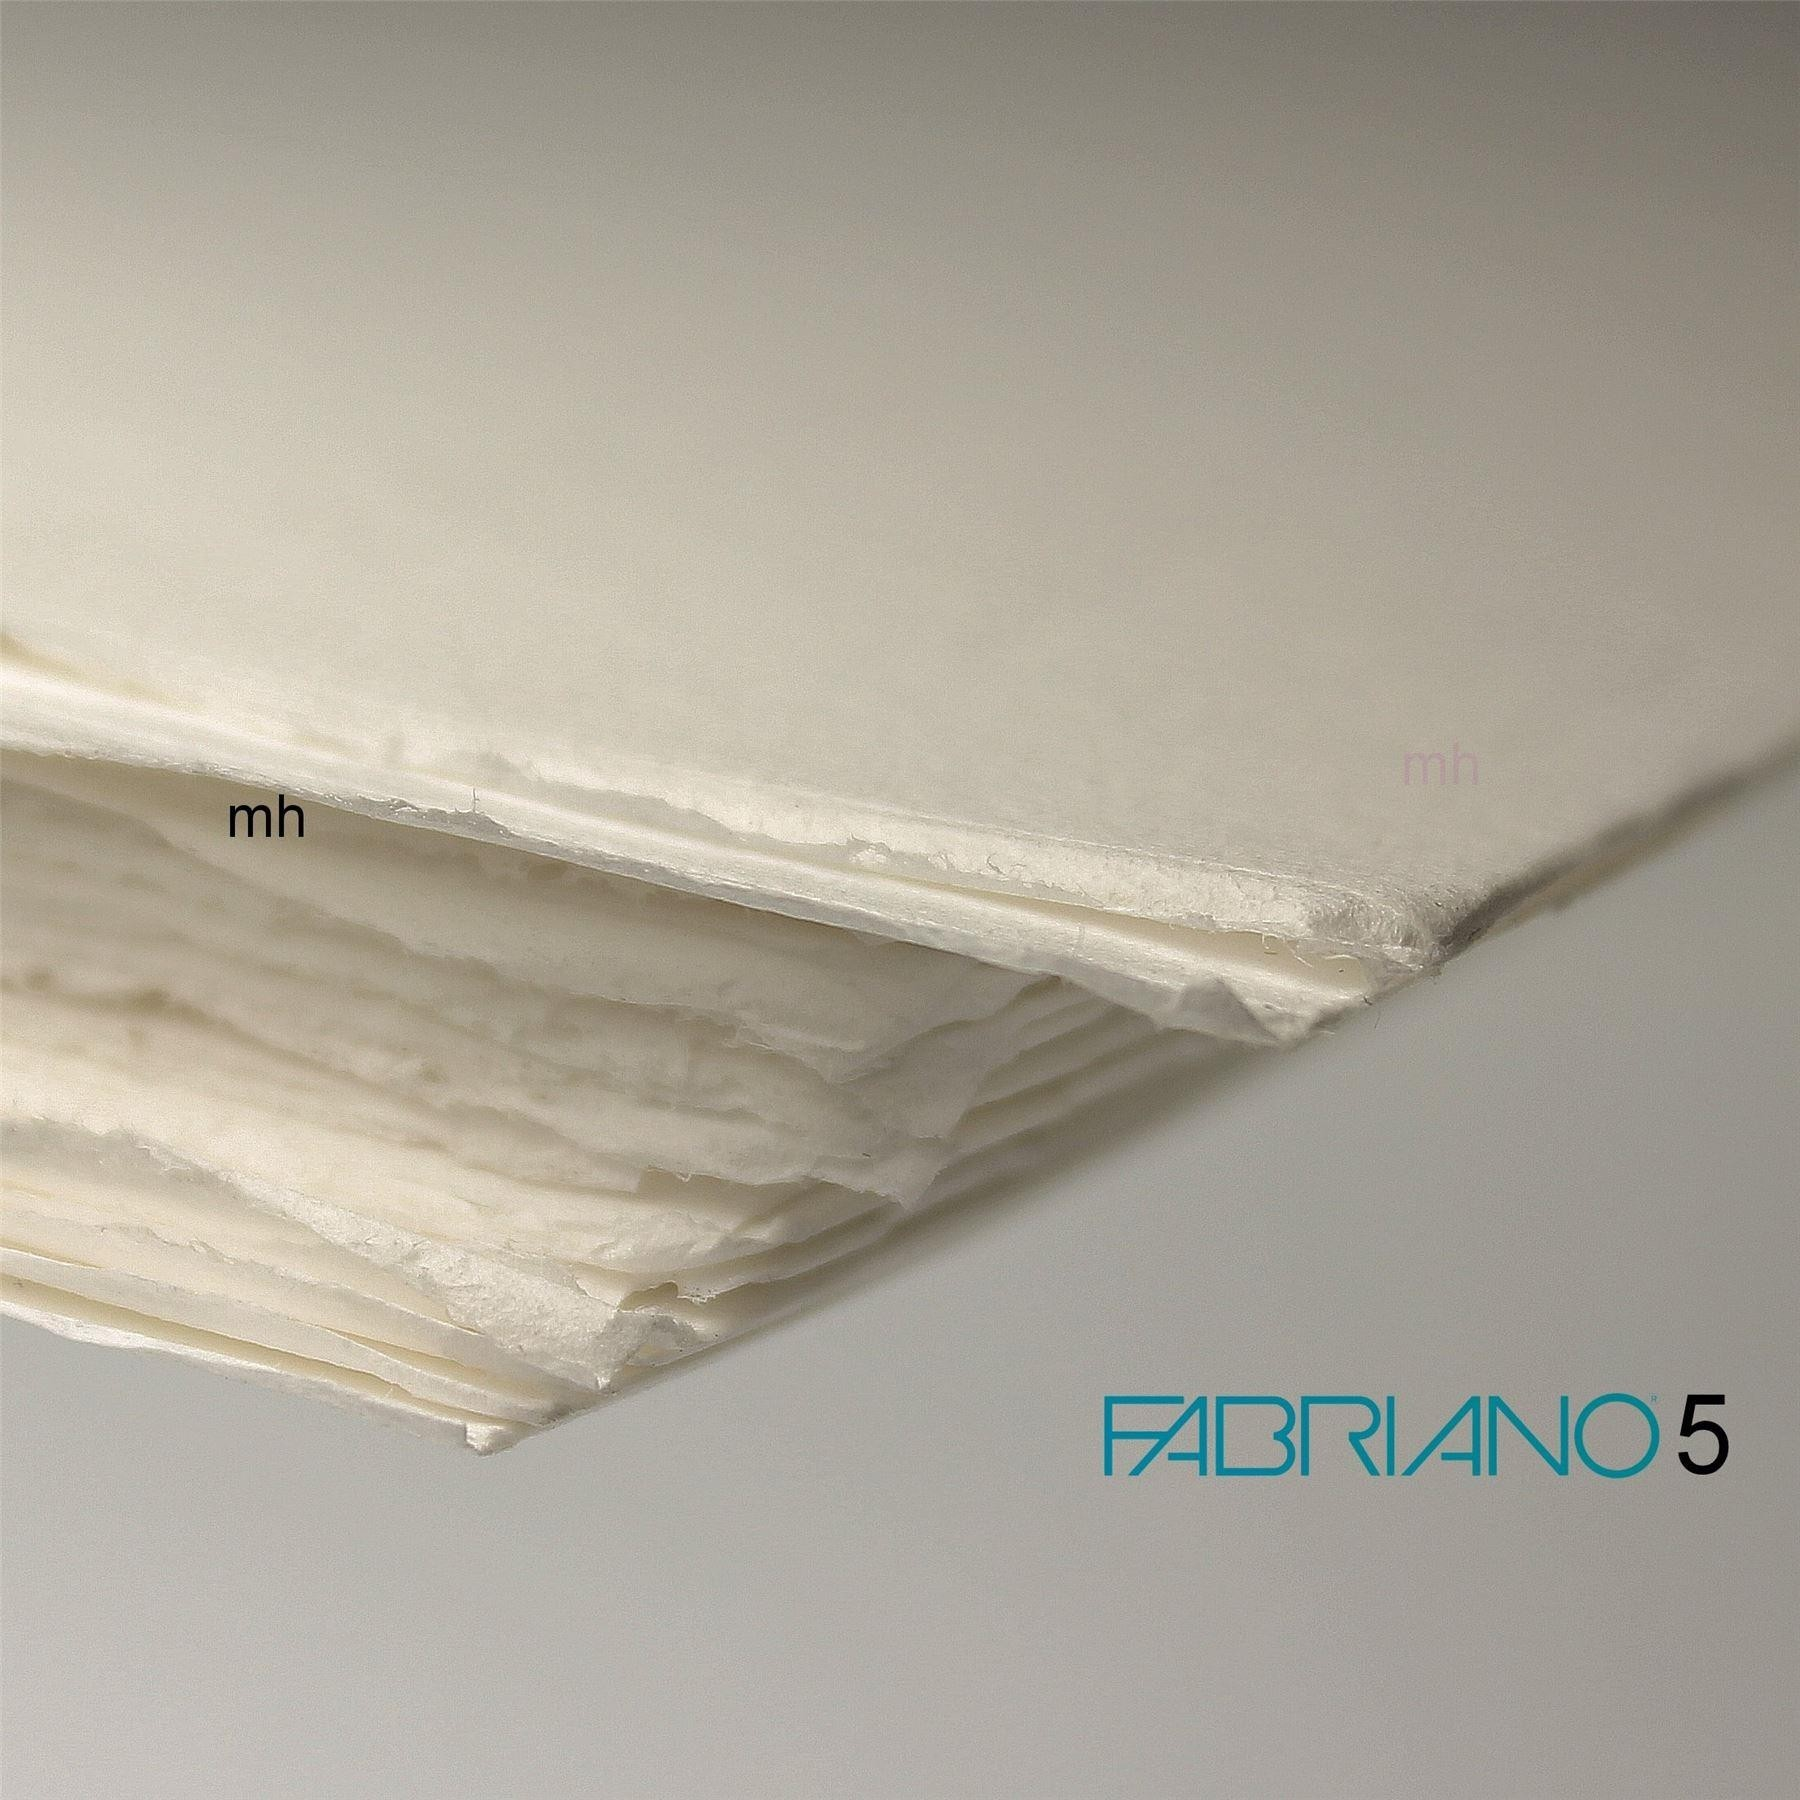 Fabriano 5 Cold Press Mould made, 50% cotton, 2 x 50cm x 35cm. 300gsm (140lbs)